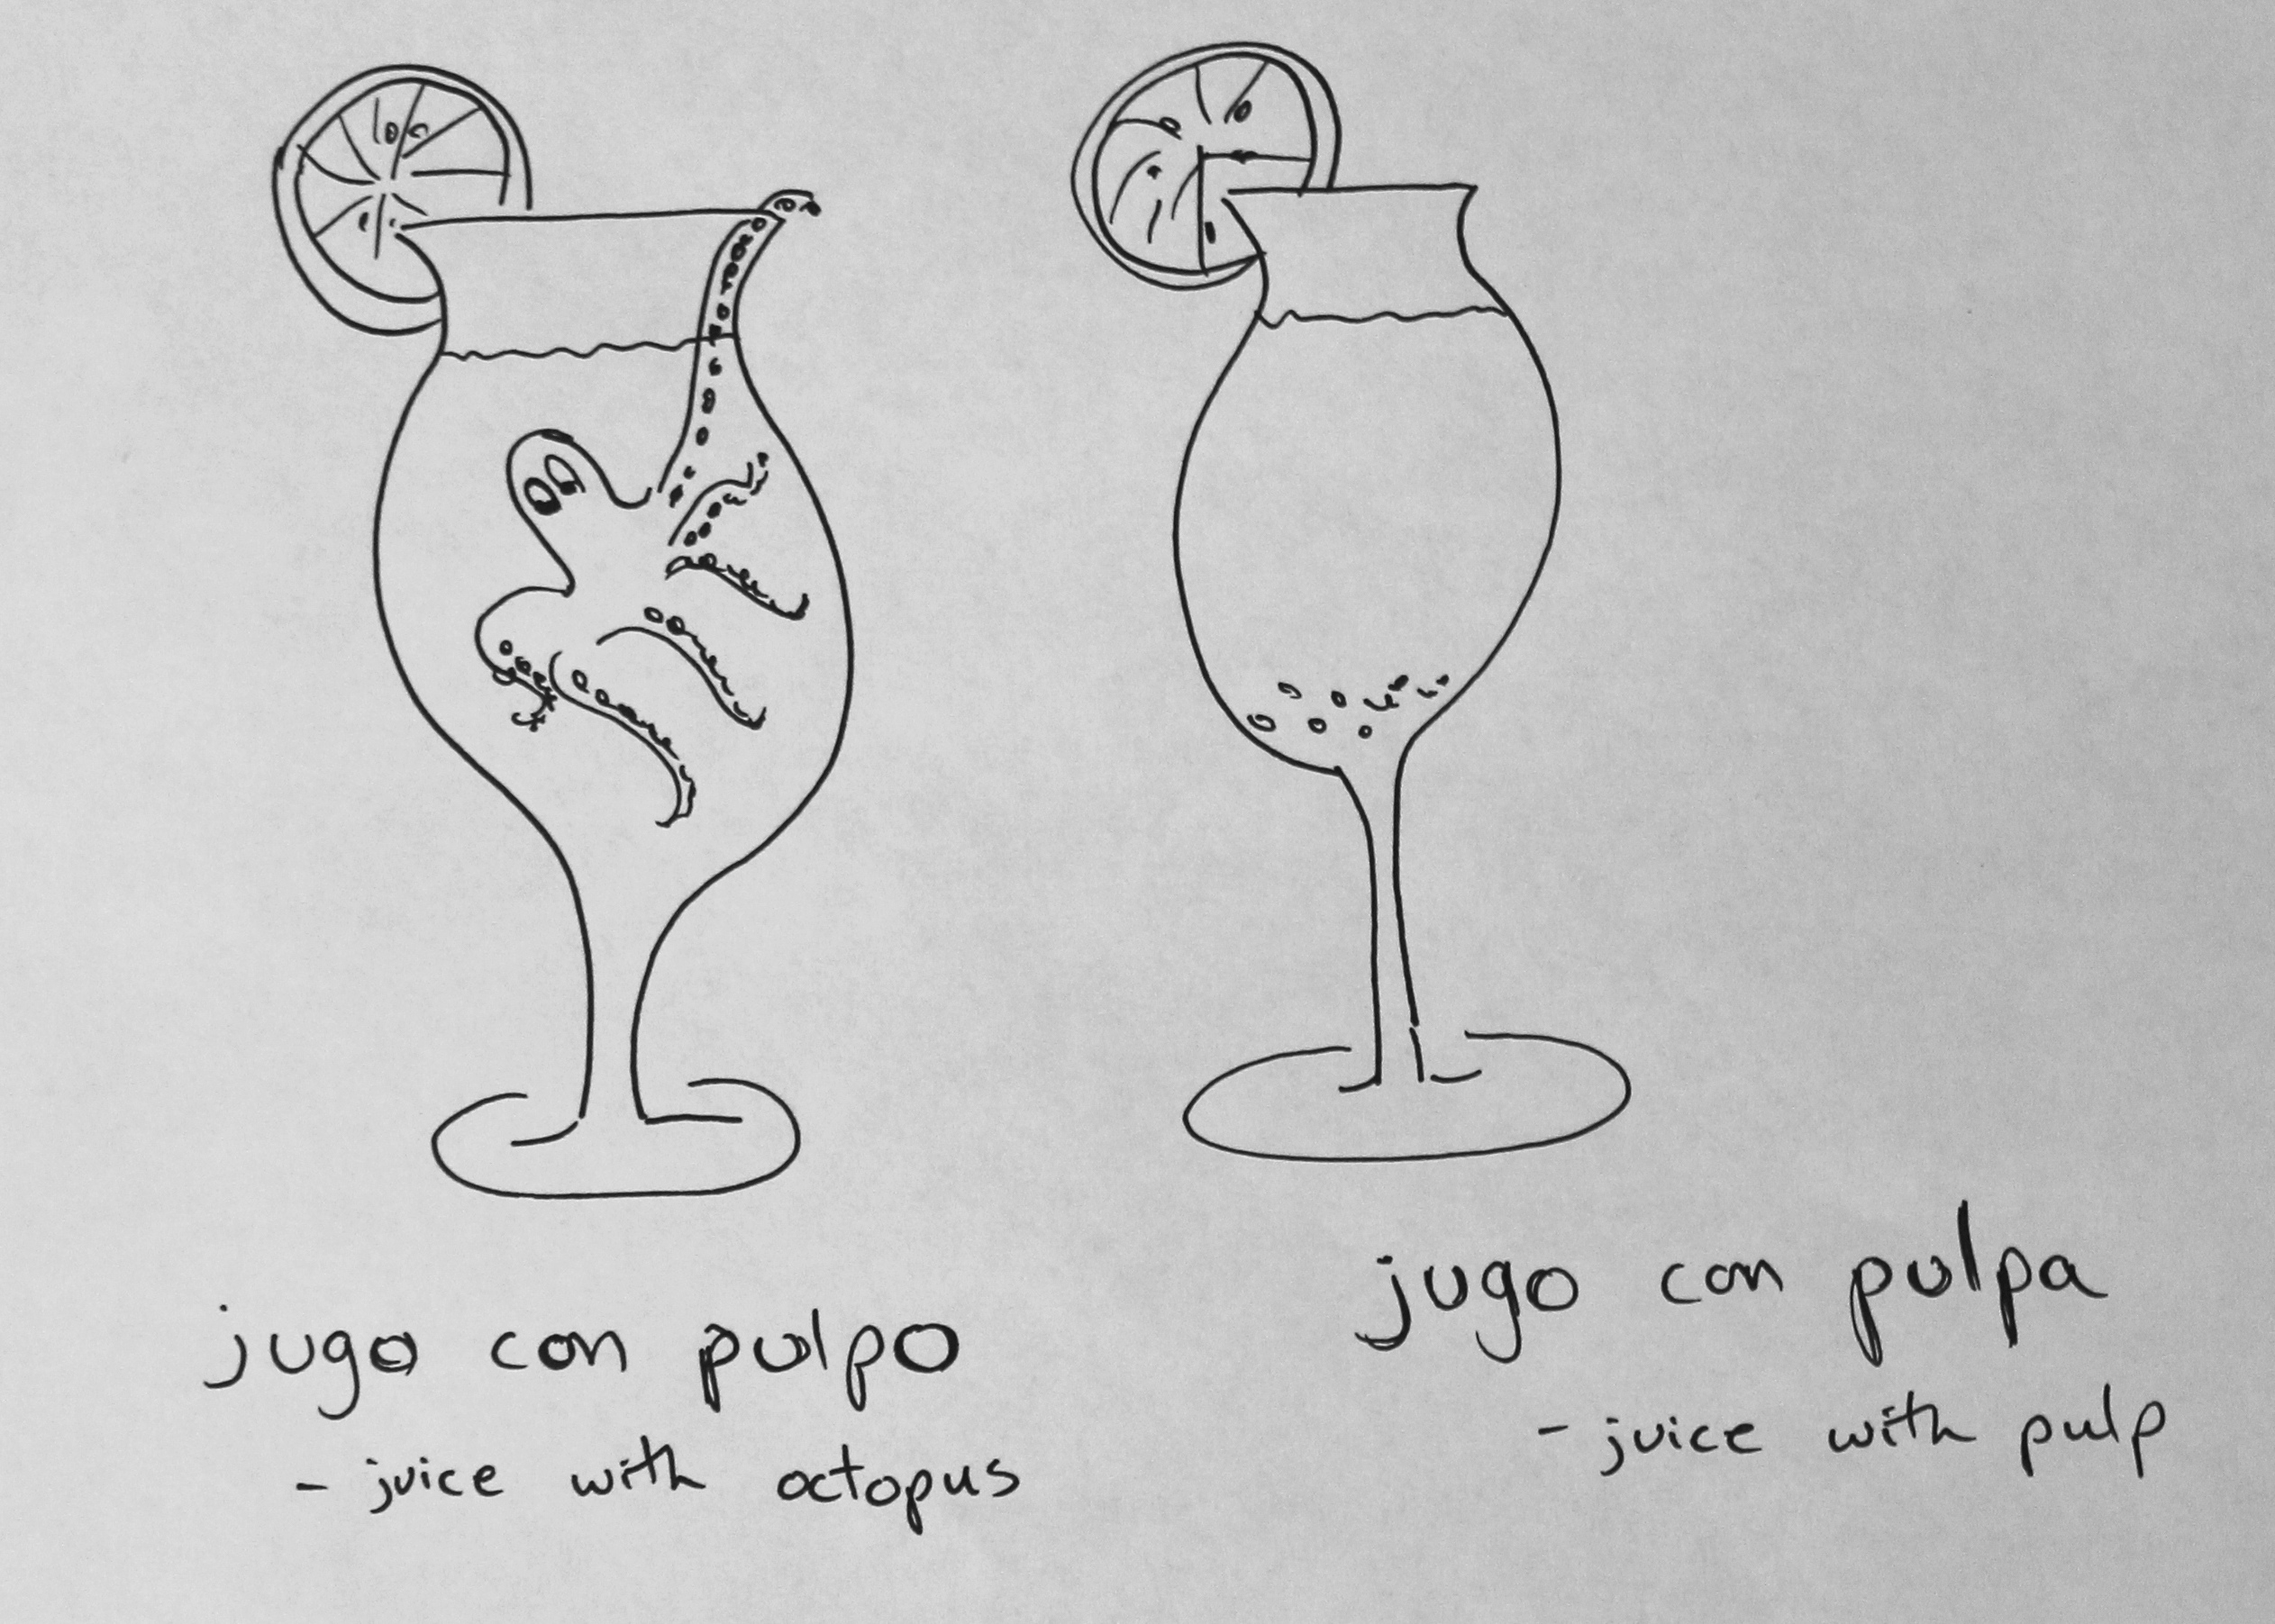 A glass of juice with squid, por favor.